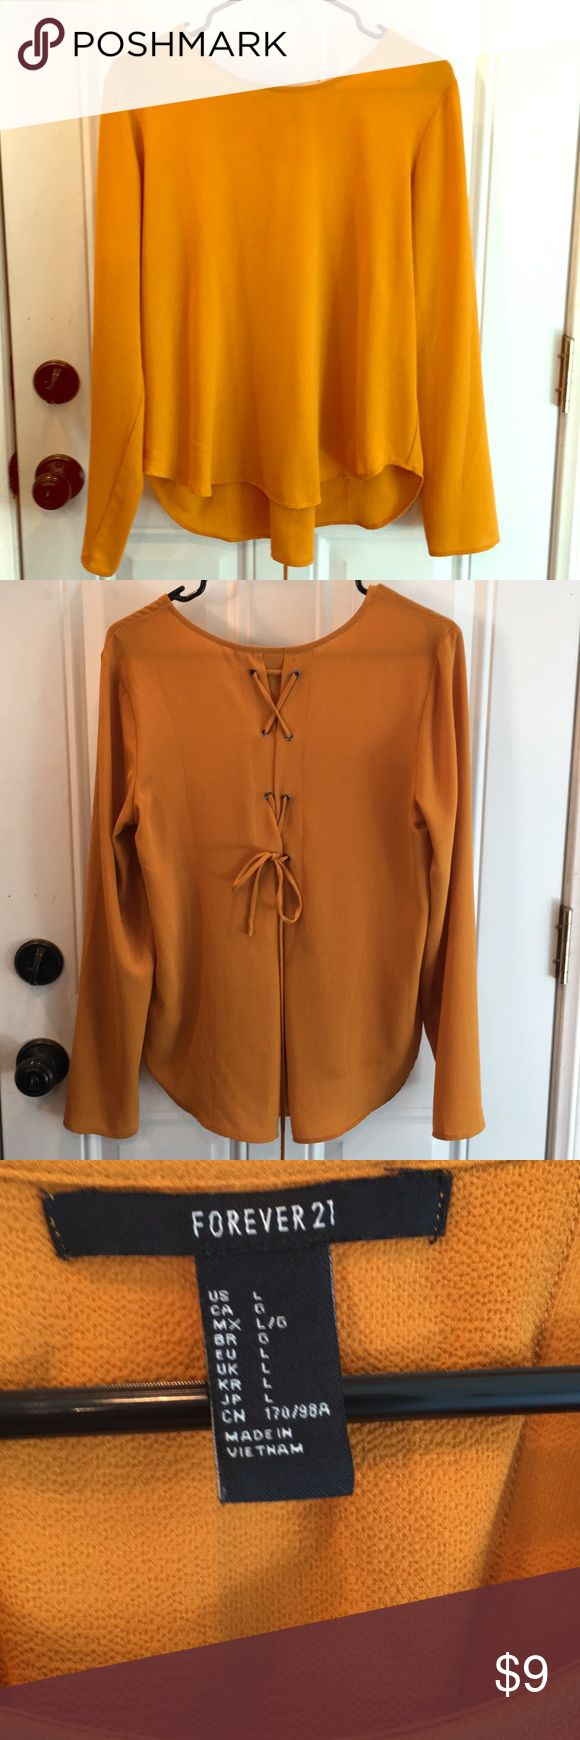 L Forever 21 Mustard yellow long sleeve top L Forever 21 Mustard yellow long sleeve top. Cute detailing on the back. Worn once. Forever 21 Tops Blouses